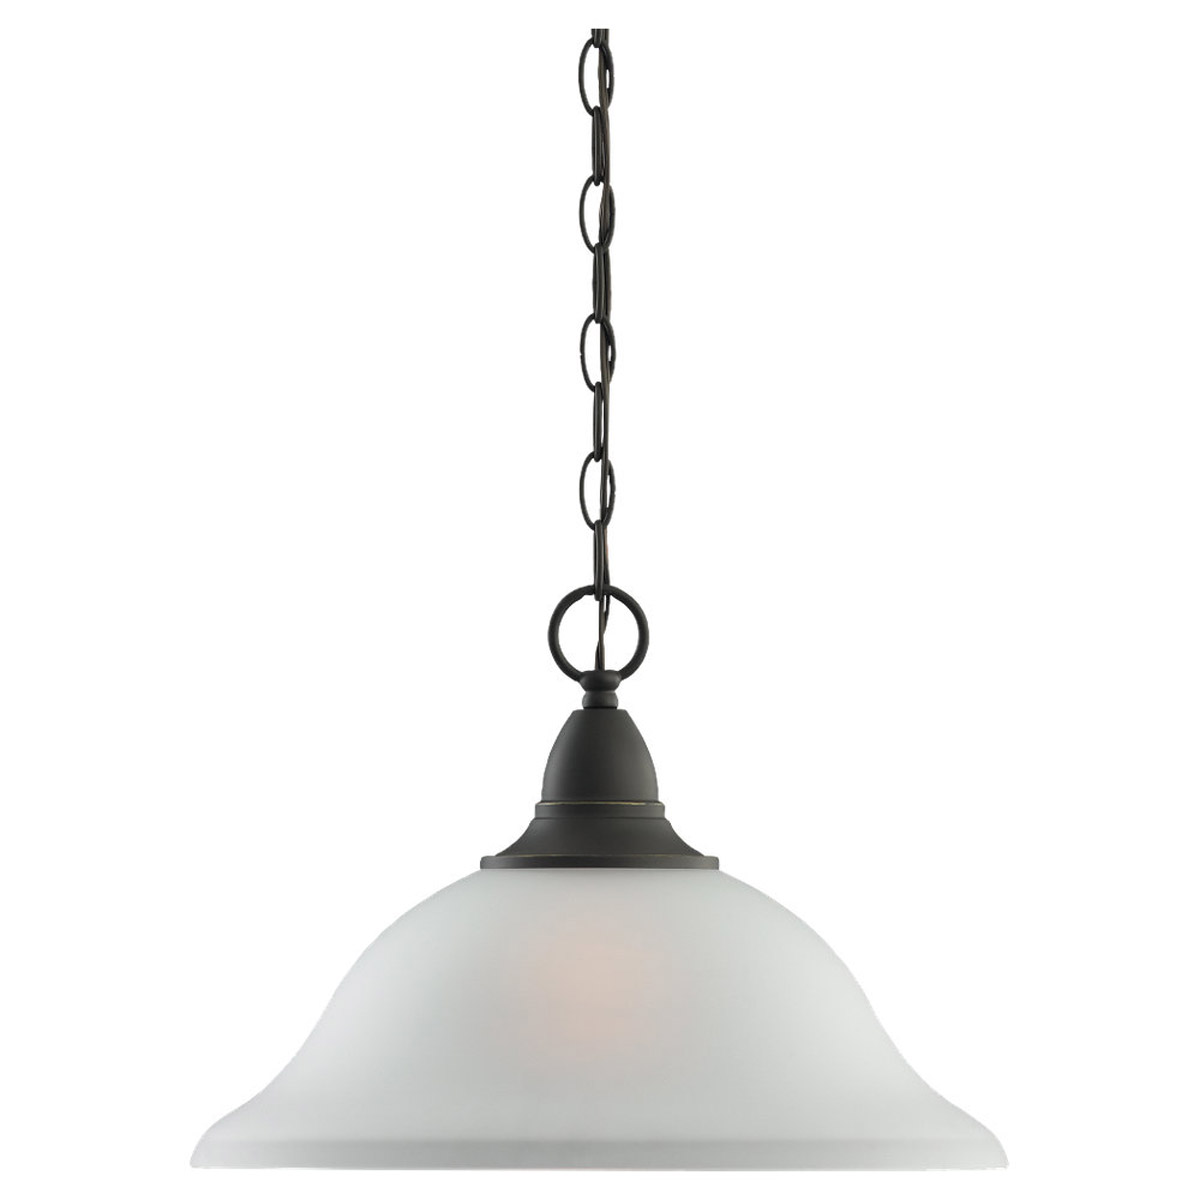 Sea Gull Lighting Albany 1 Light Pendant in Heirloom Bronze 65575-782